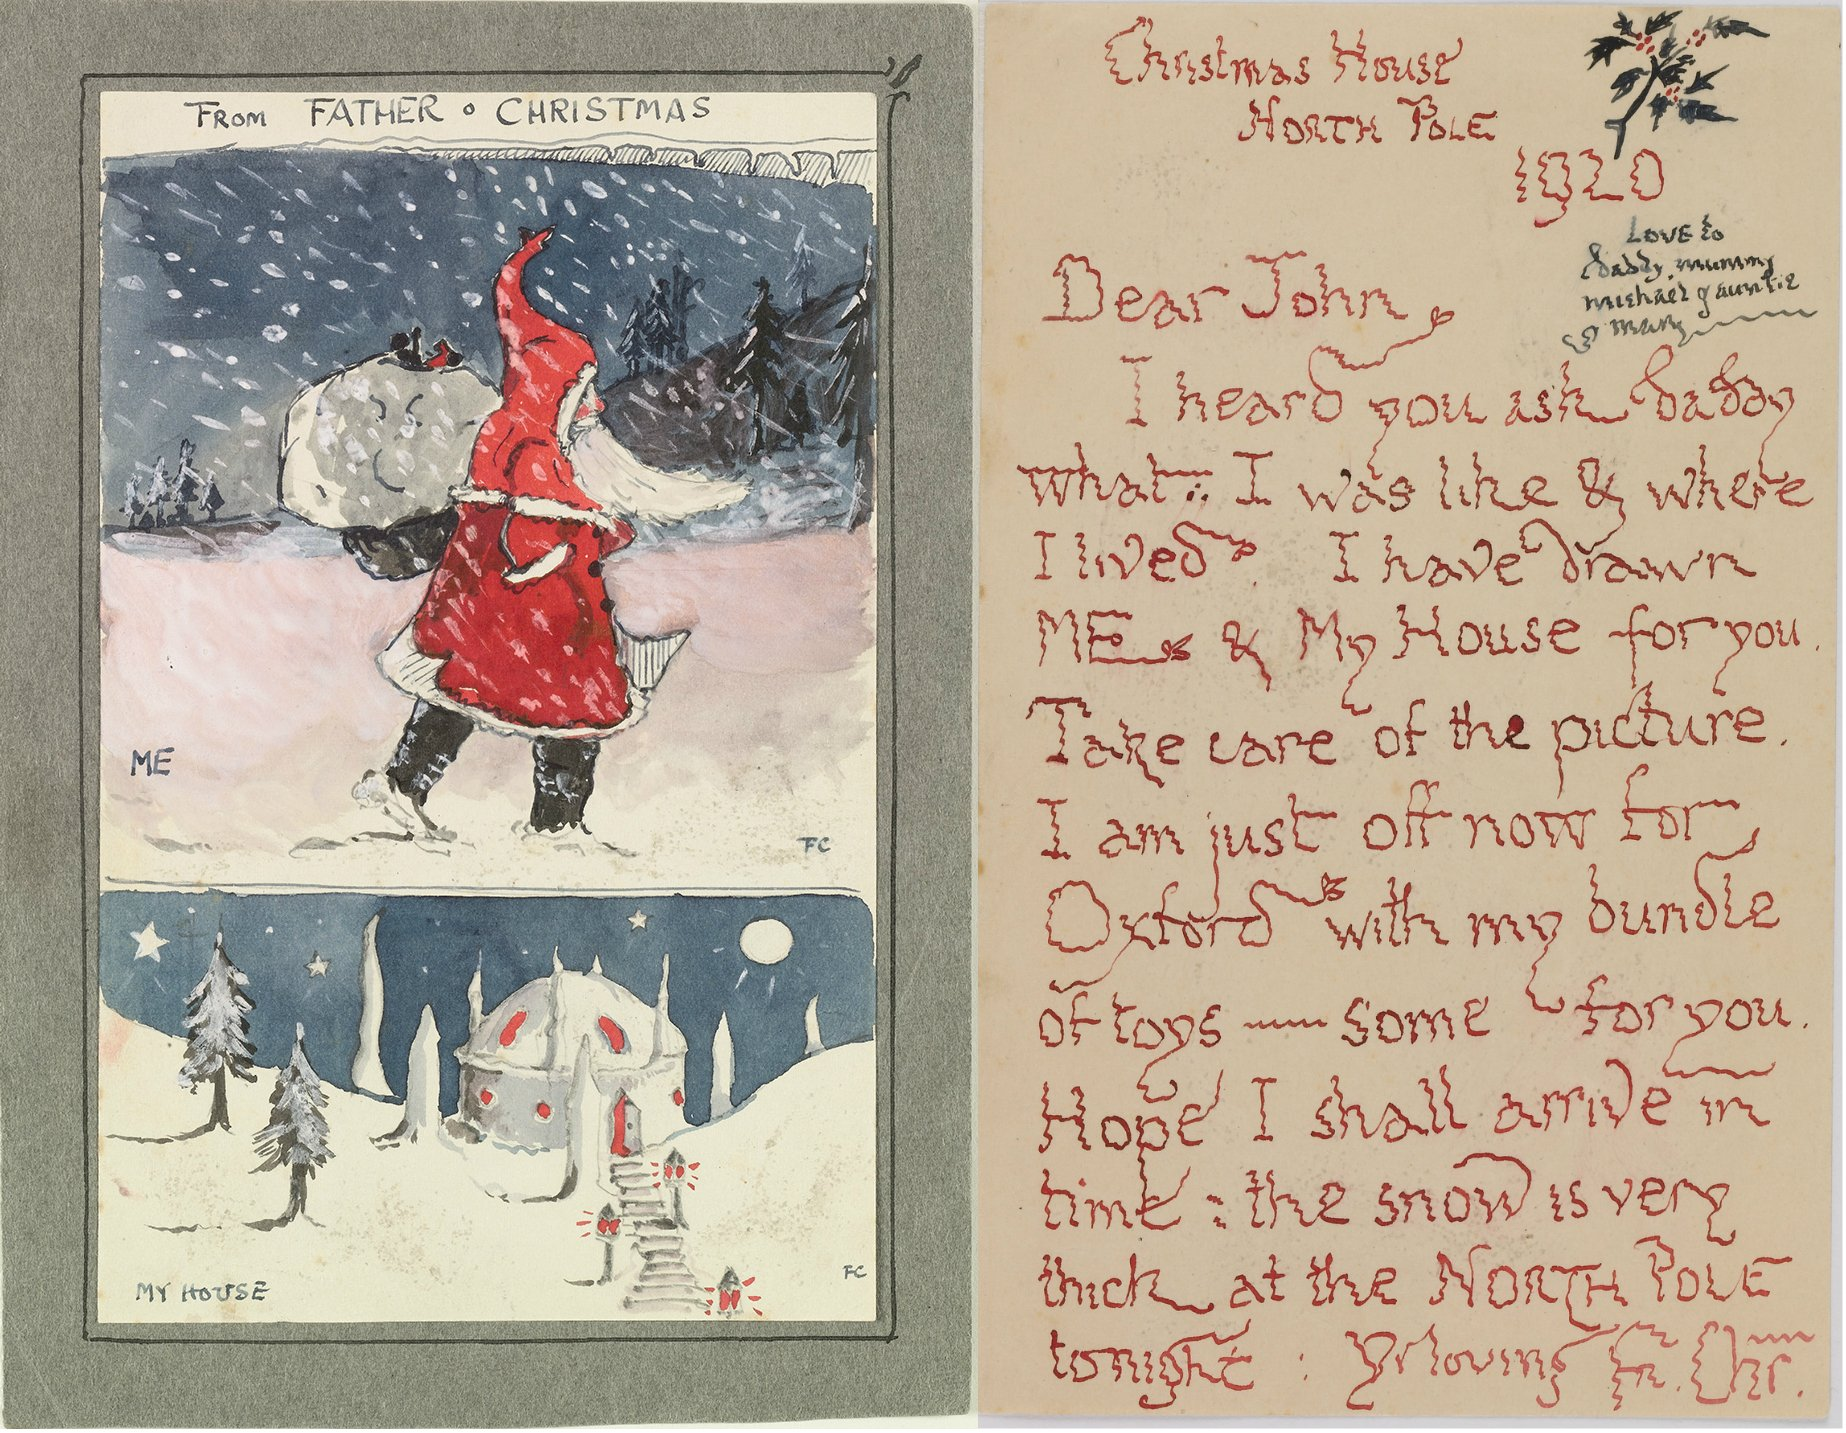 In Christmas letters to his children, J.R.R. Tolkien created a fantastic Arctic with echoes of Middle-earth